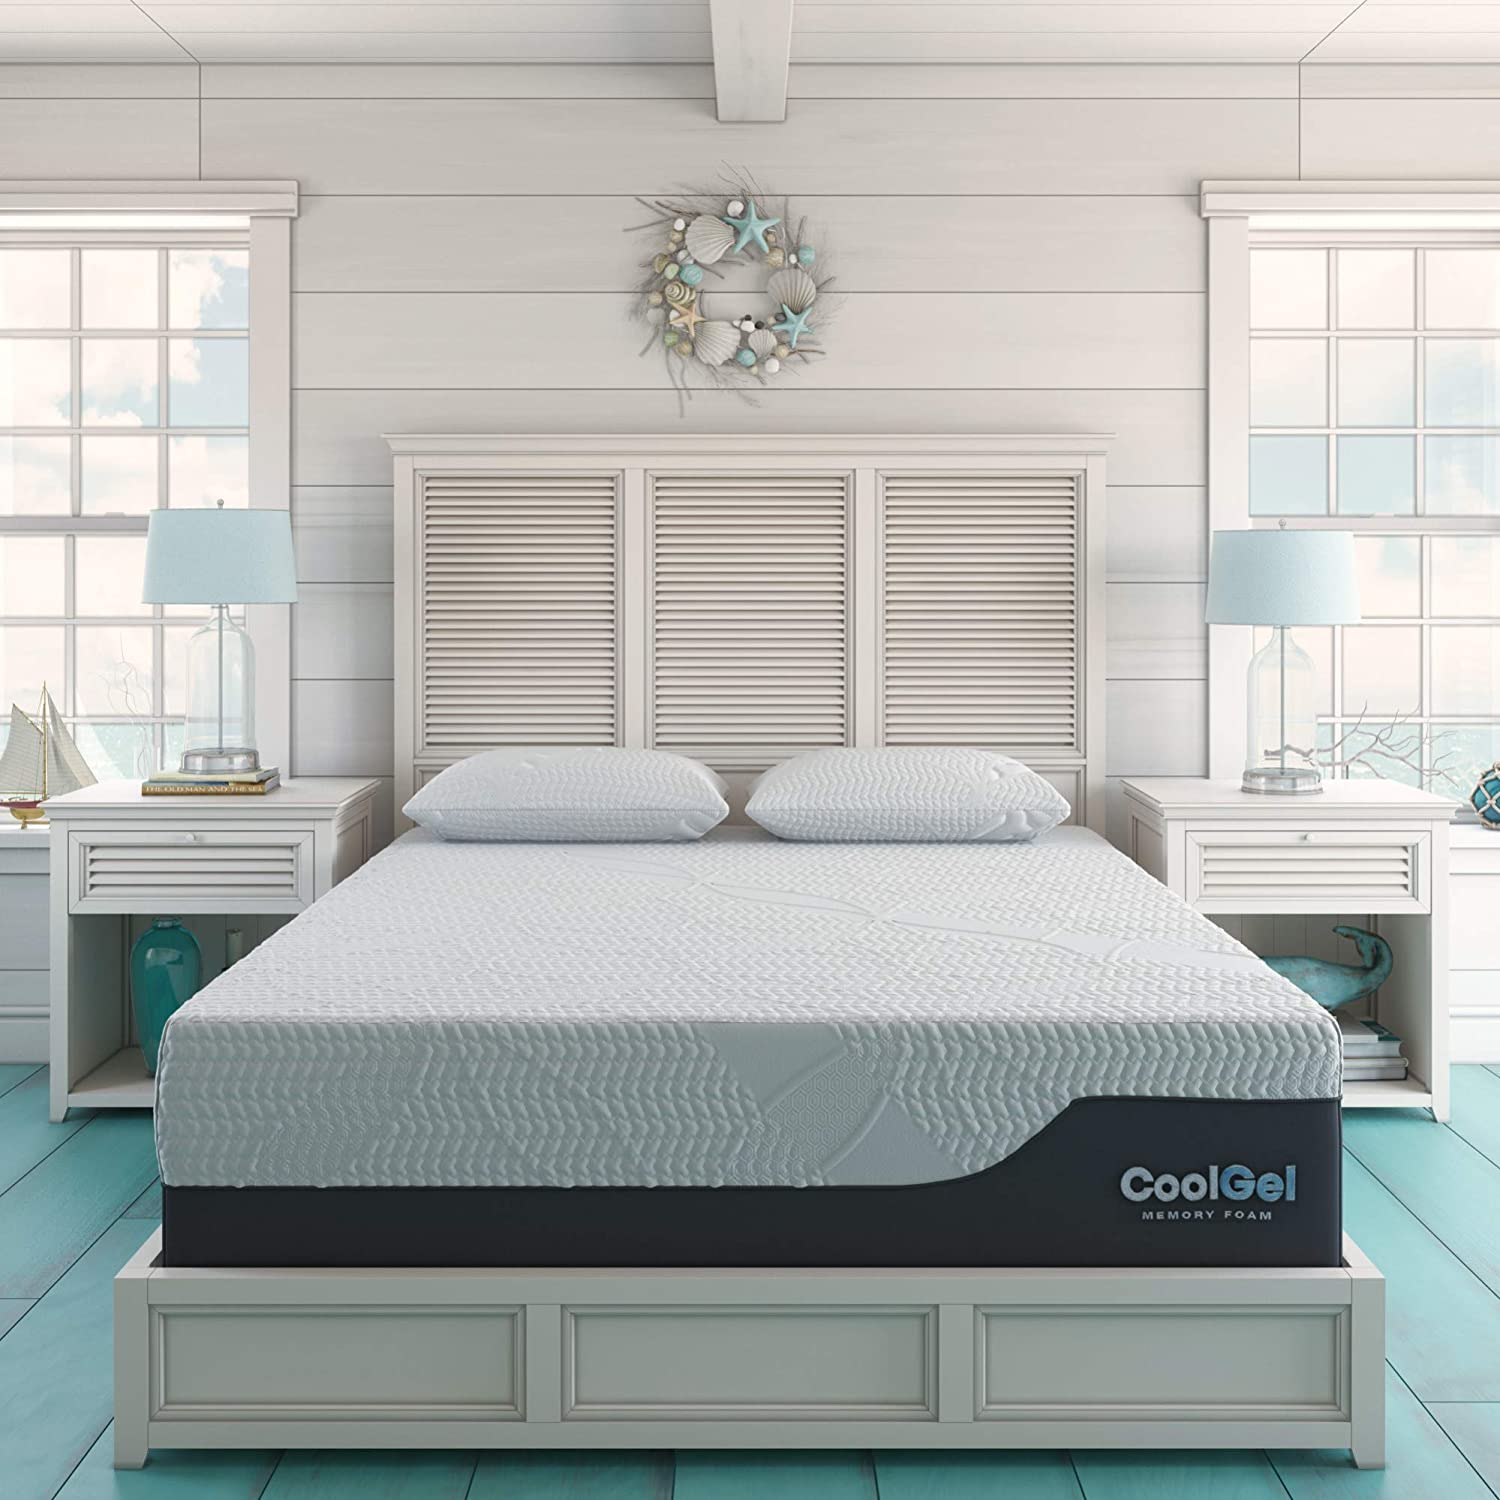 10 best mattresses for back pain relief in 2021. Classic Brands Chill Memory Foam photo.